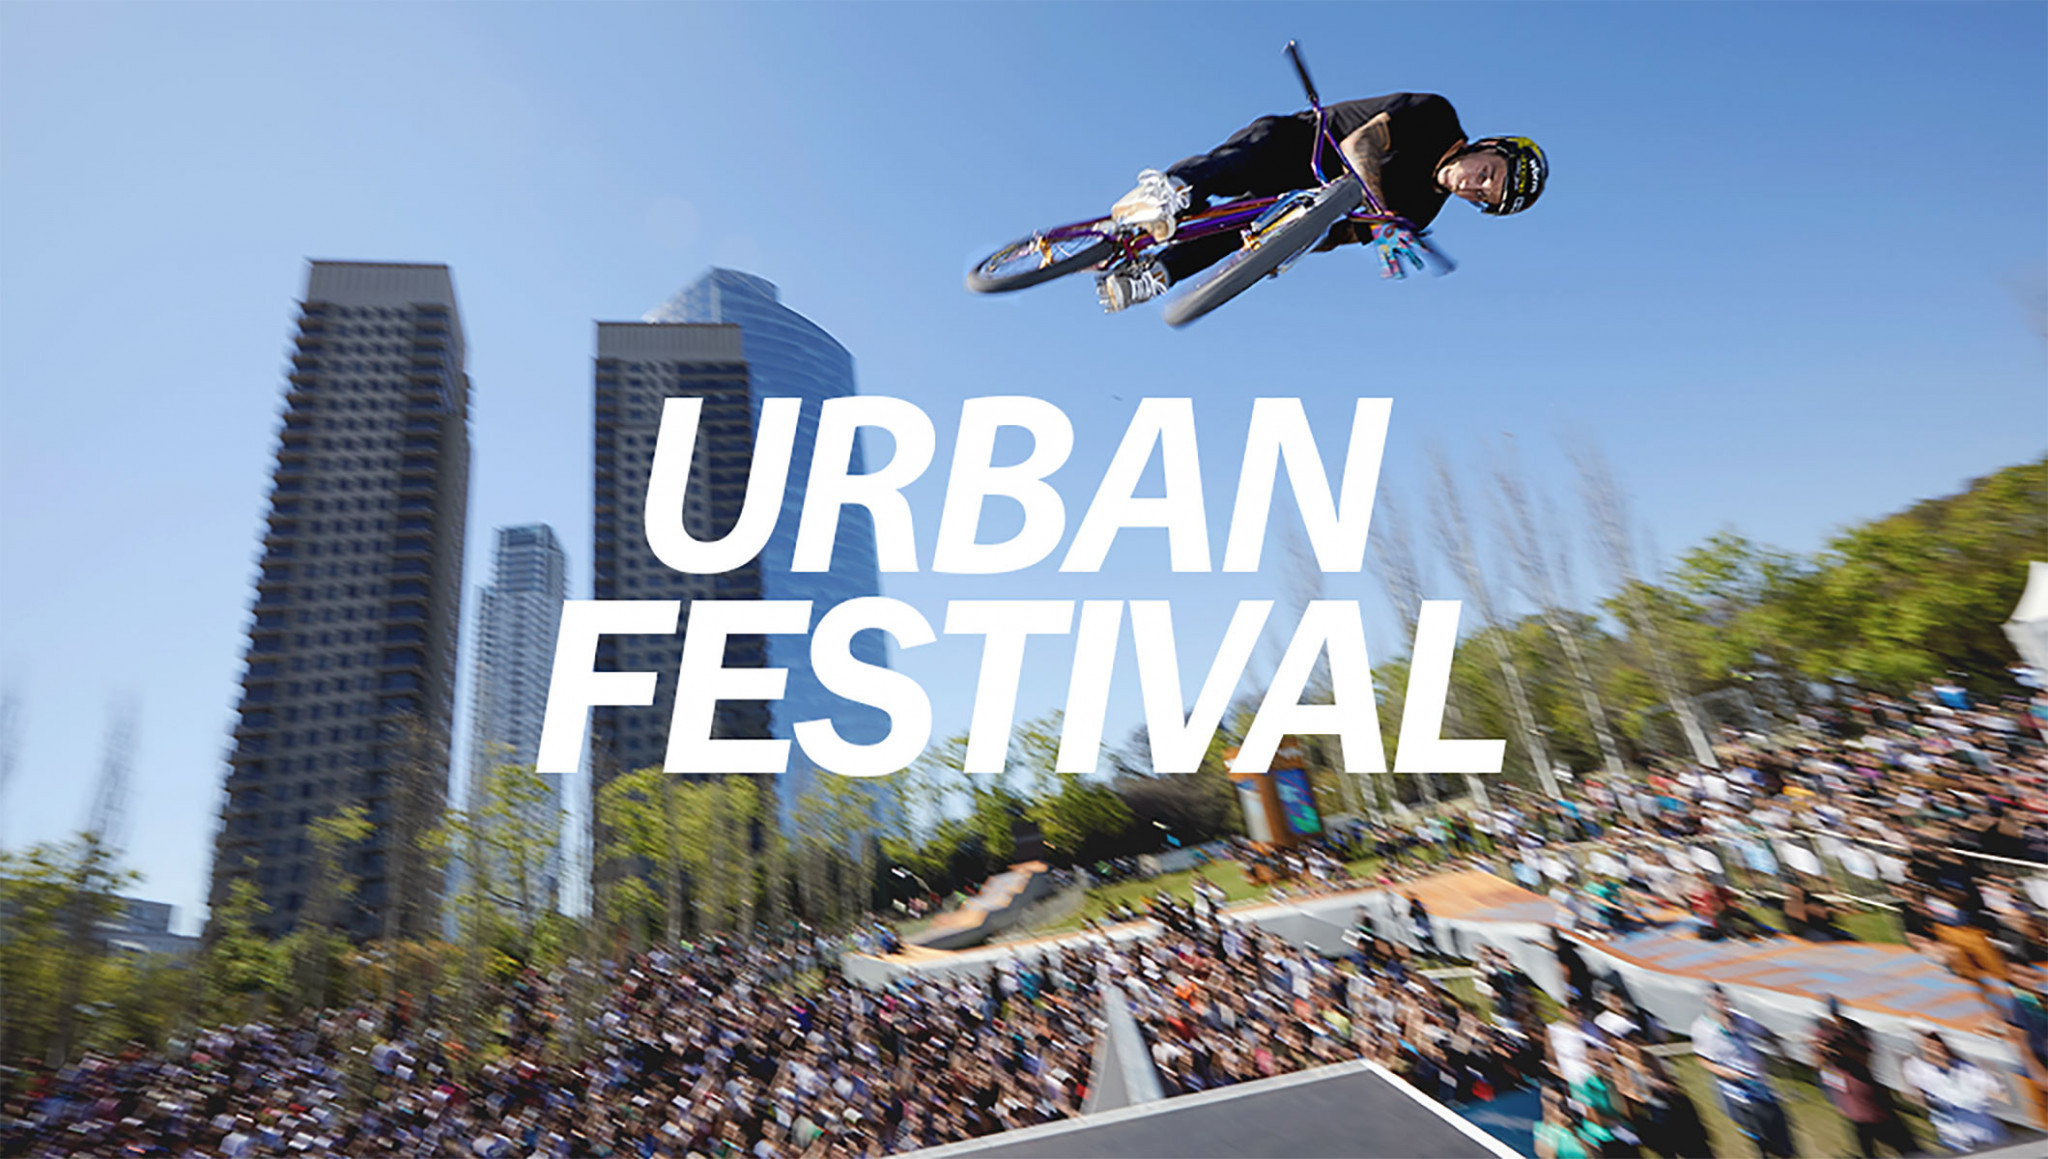 The Urban Festival is one of three symbolic features that will be developed at